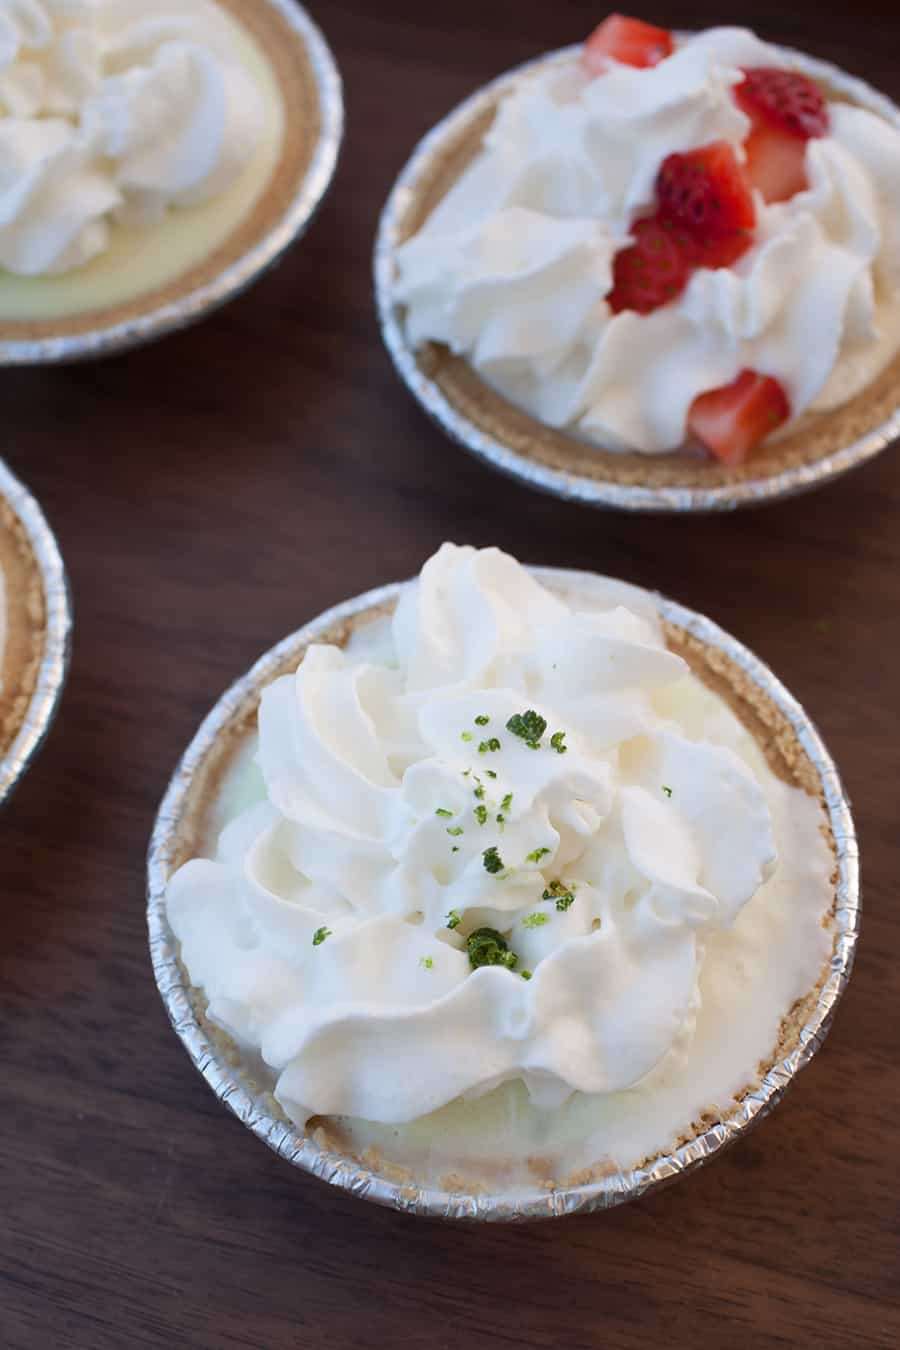 These quick, no bake whipped cream pies are the perfect way to serve dessert this summer! Try these three easy recipes for key lime cream pie, strawberries and cream pie, and coconut pineapple cream pie.